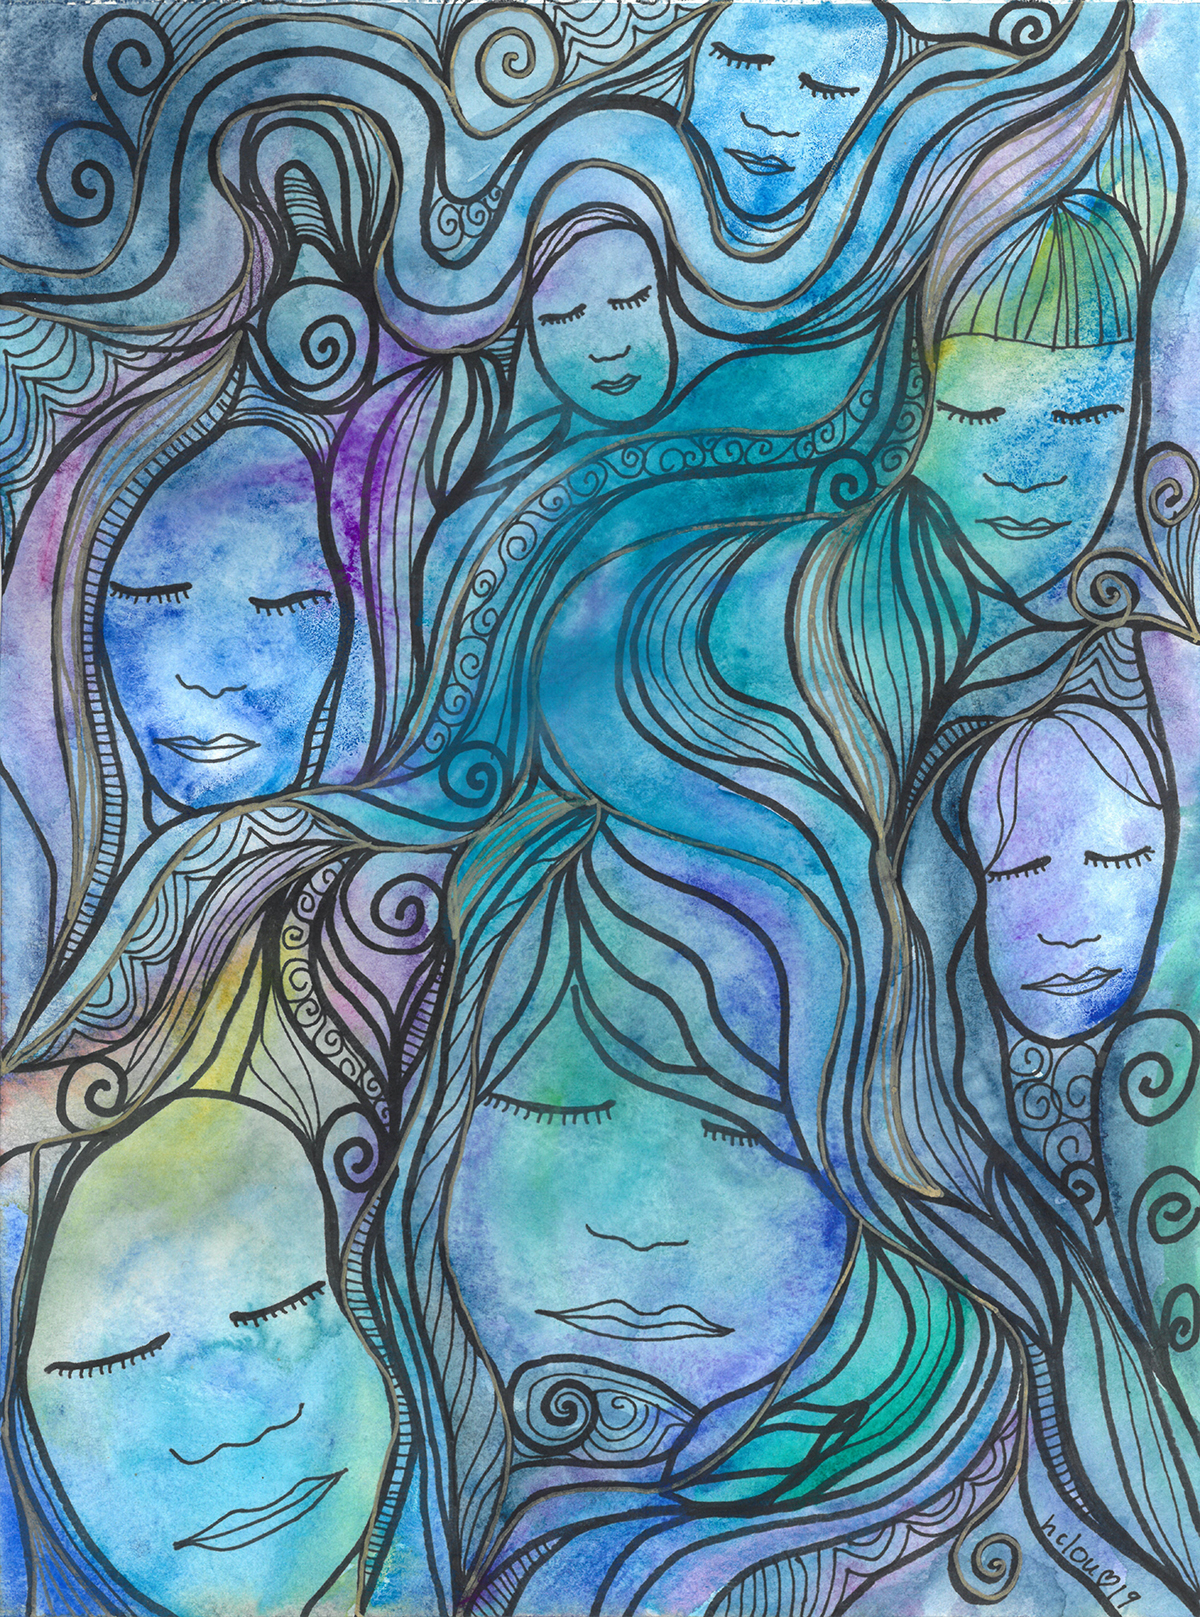 'womxn in water' image courtesy of heather c. lou. Many blue faces appear with their eyes closed.